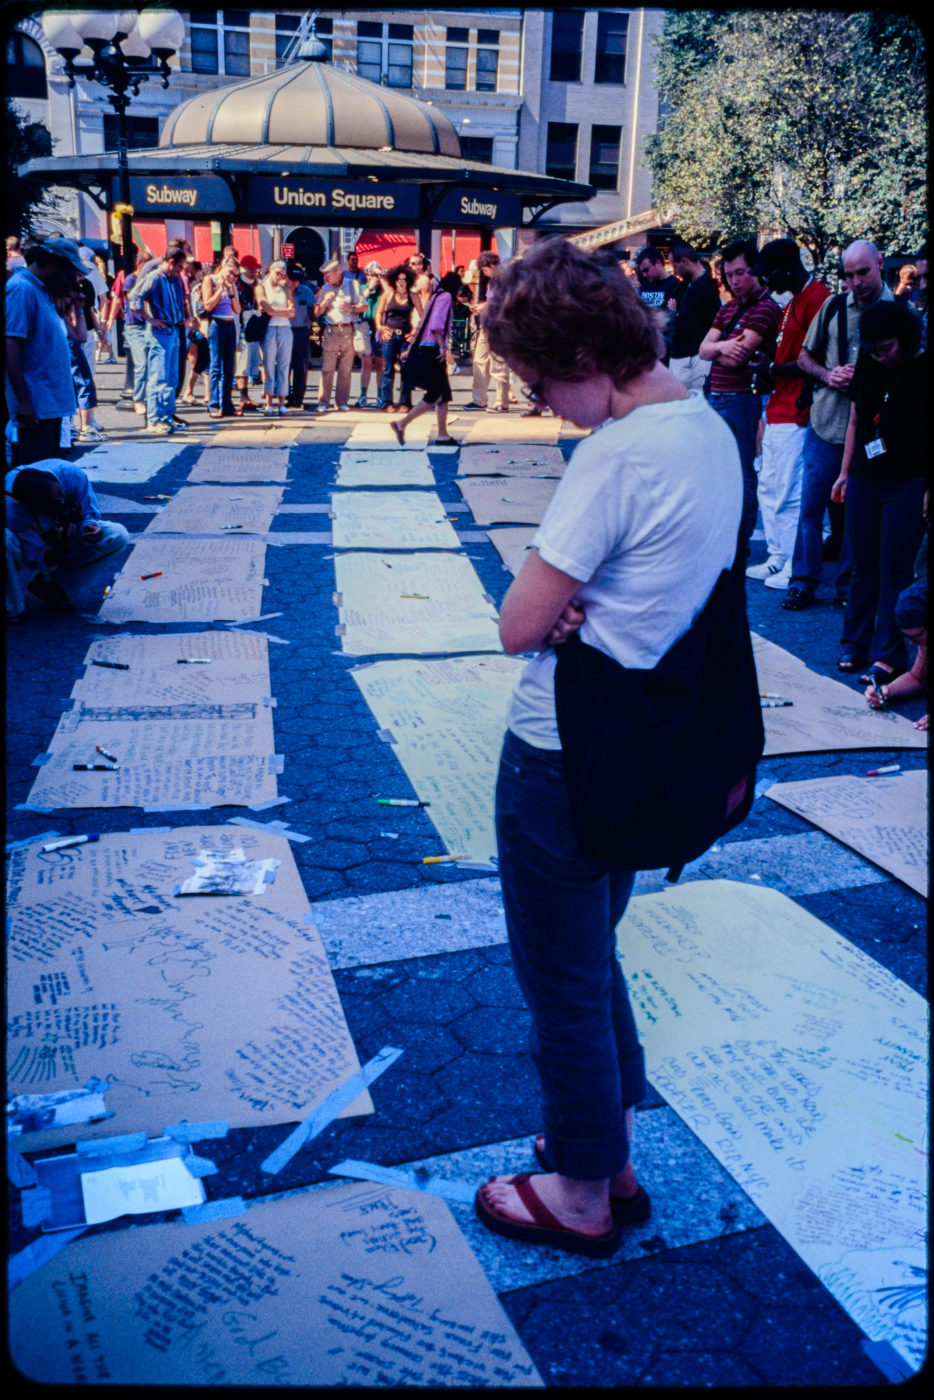 One Individual Stands Reading Messages Left at Union Square Park Memorial Between Rows of Cardboard, Other New Yorkers Gather Nearby.jpg